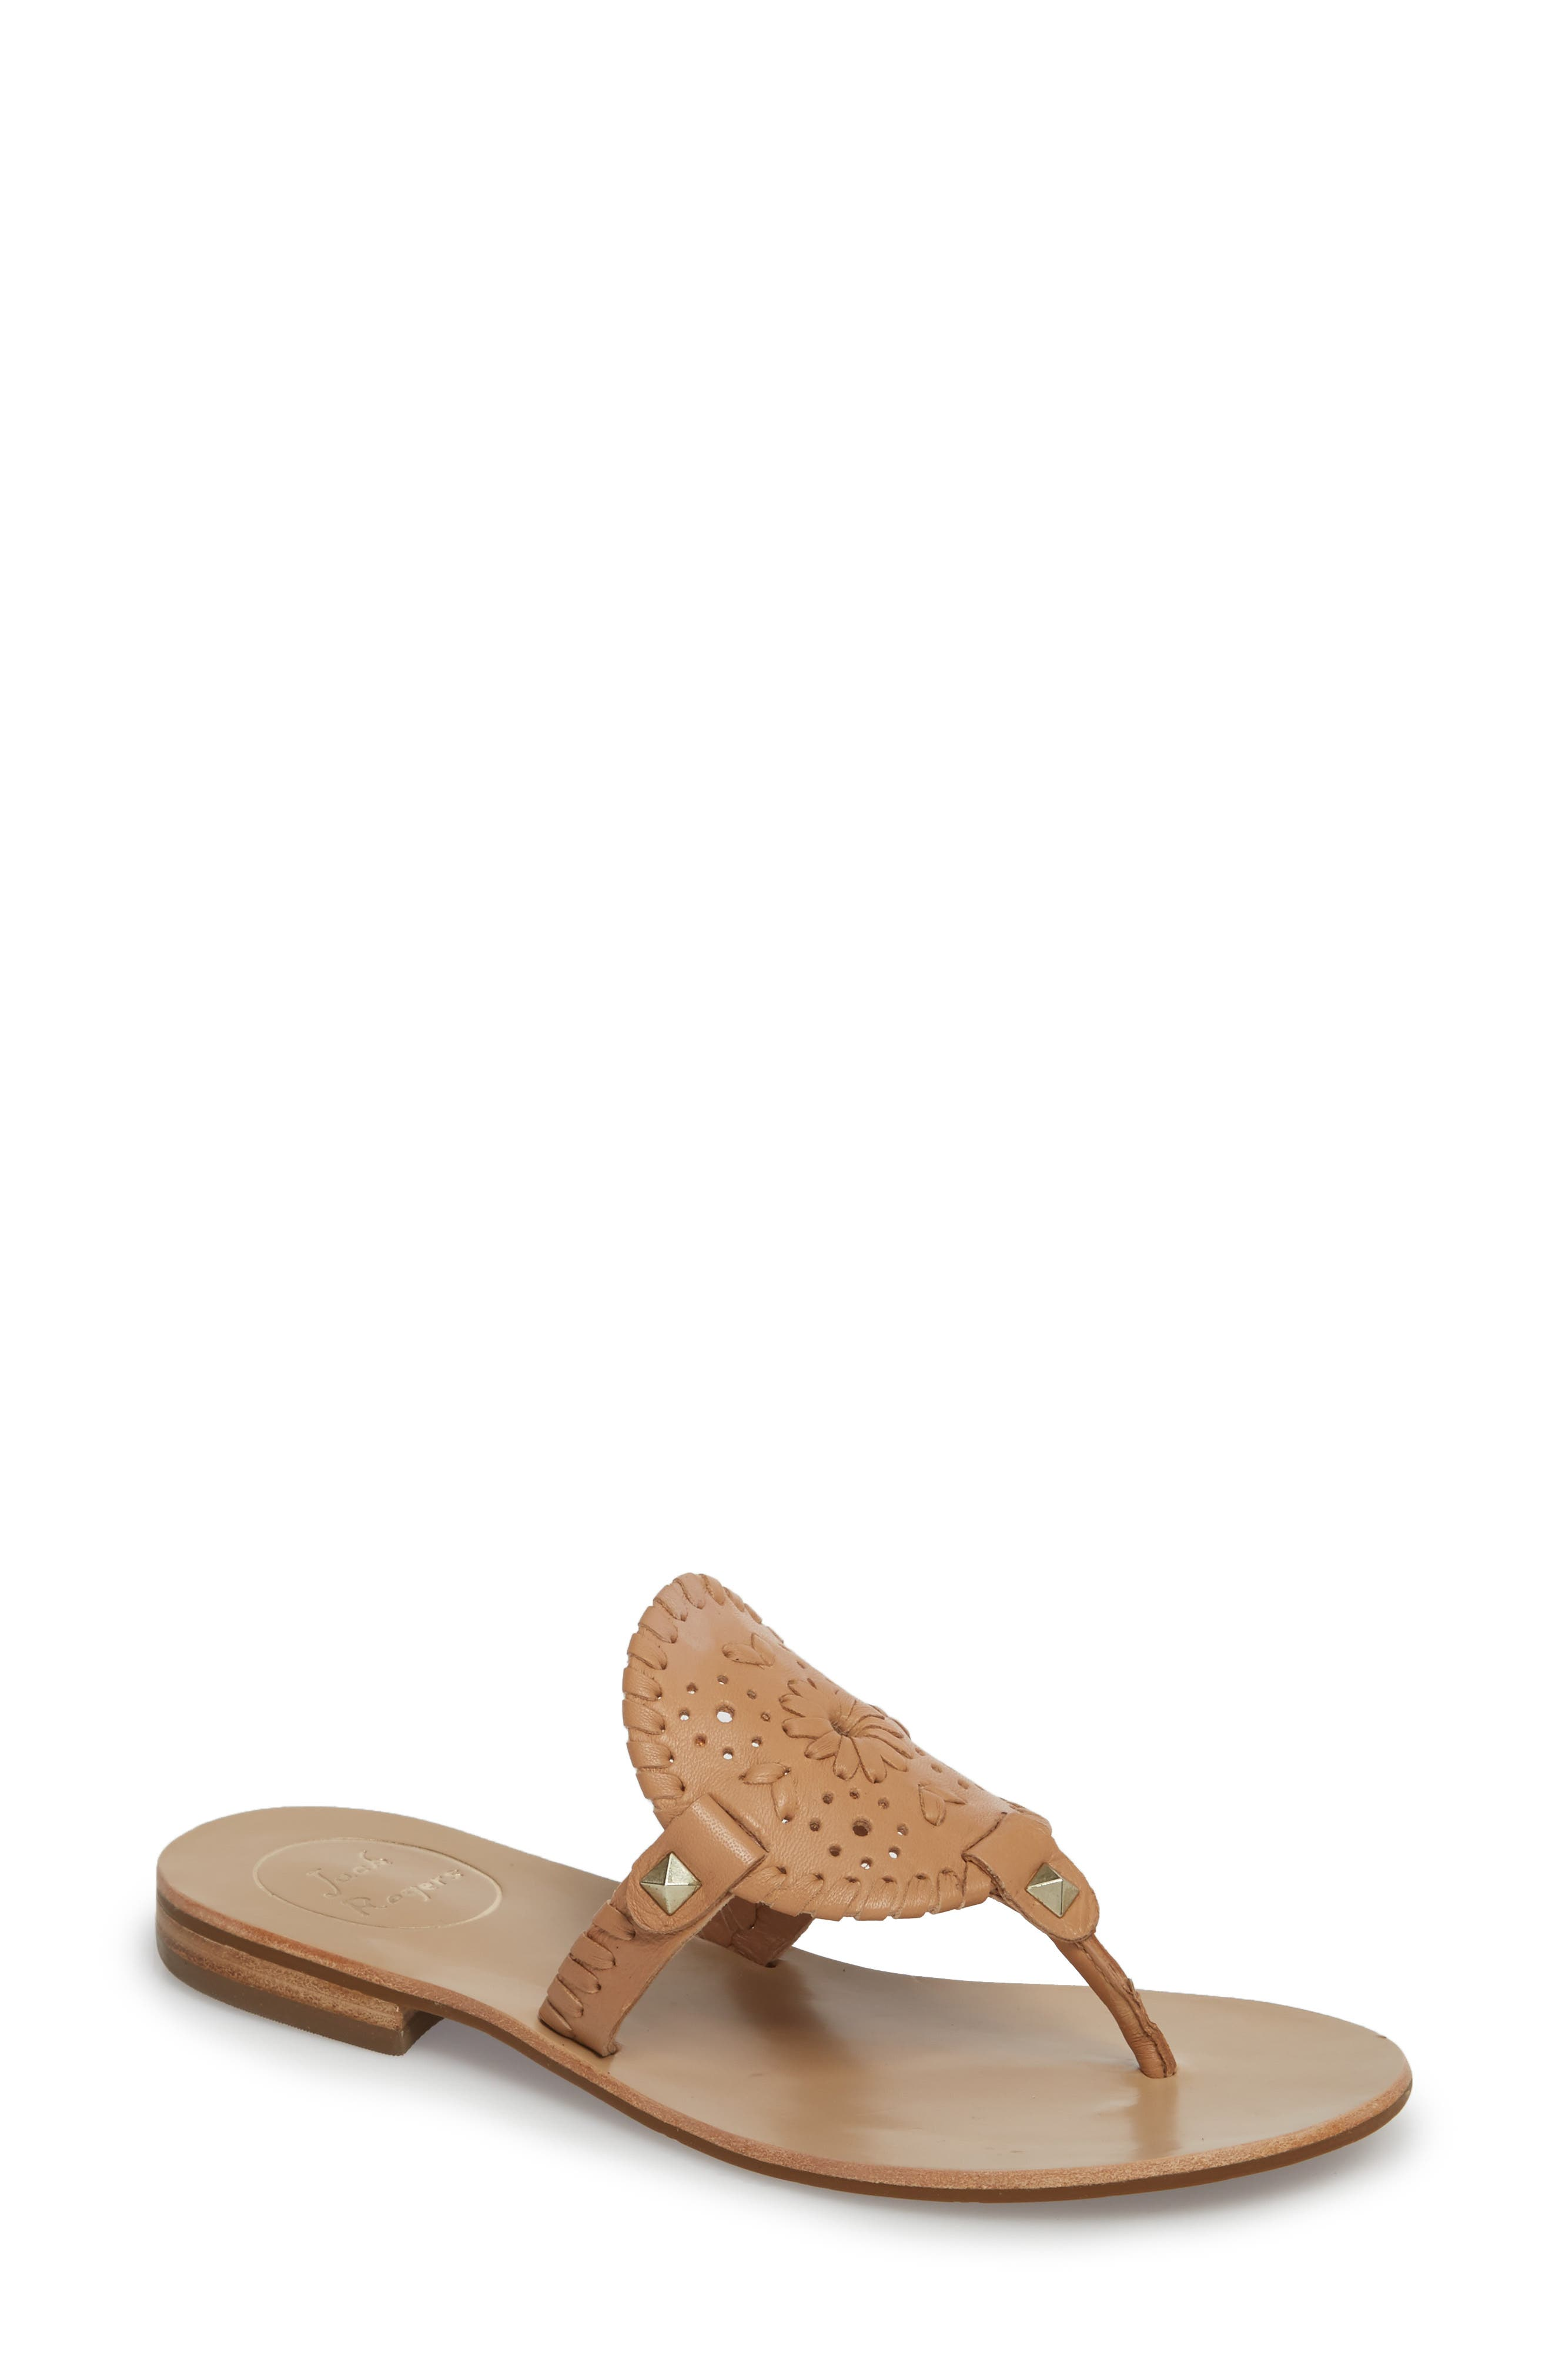 'Georgica' Sandals,                             Main thumbnail 1, color,                             Buff Leather